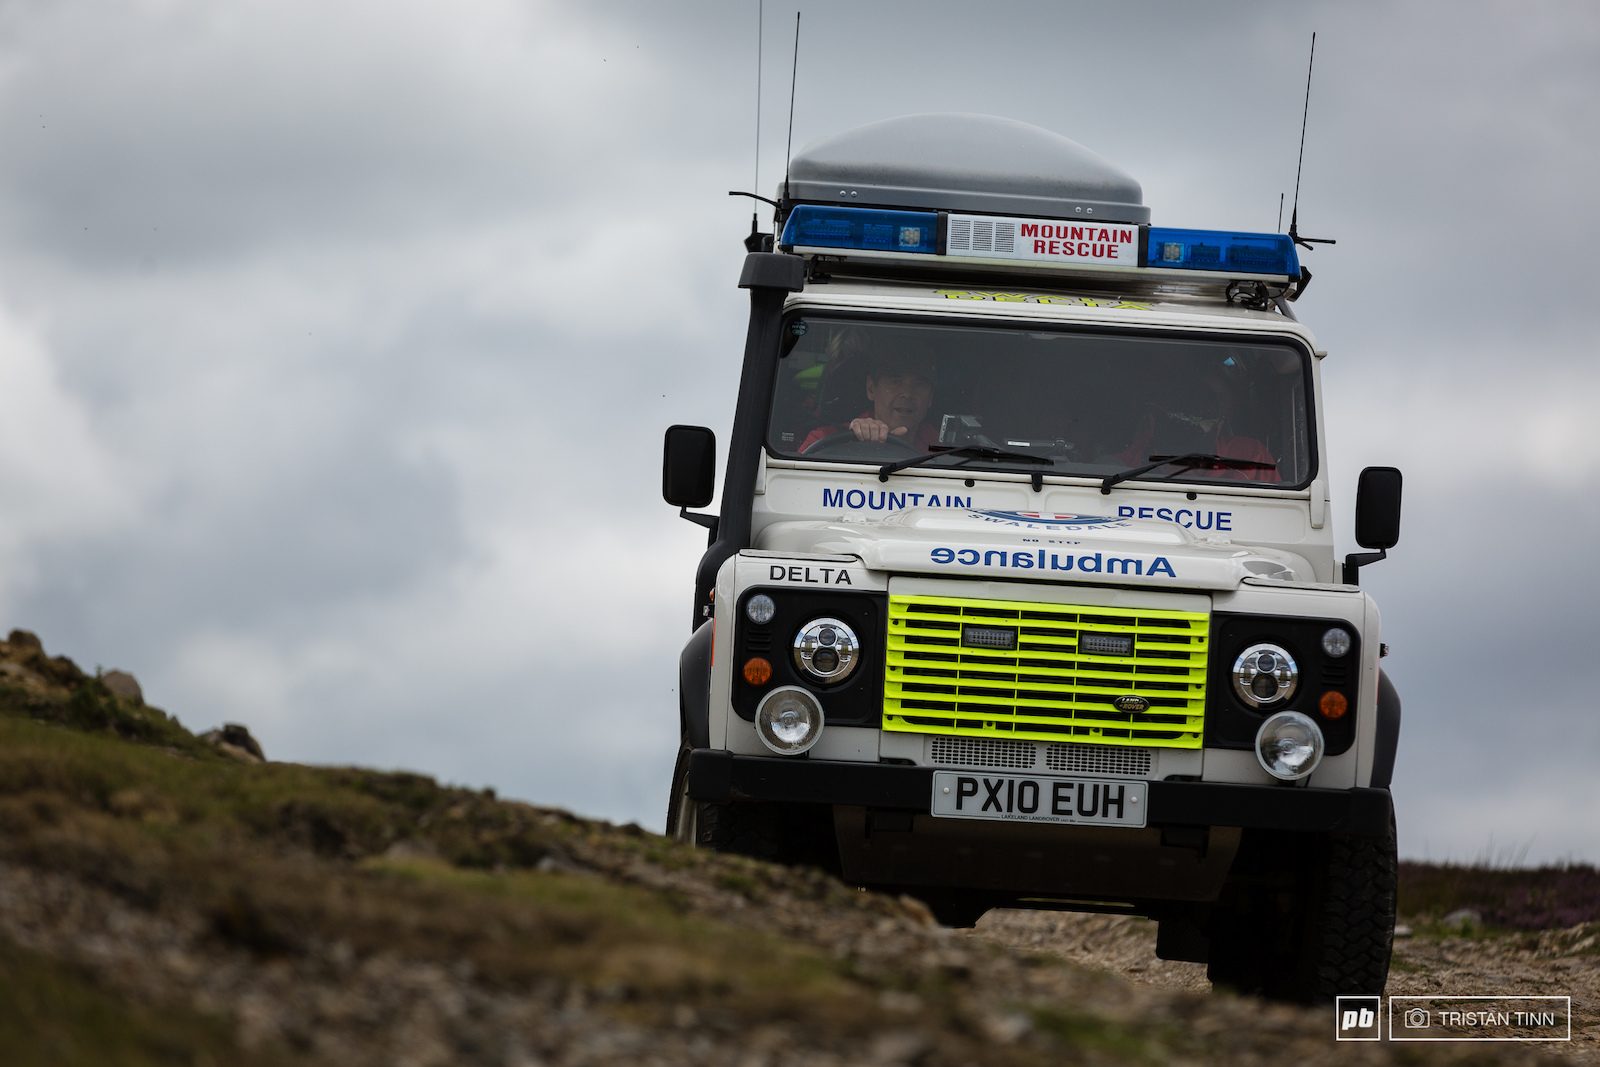 Swaledale MRT were on site to mop up any casualties give a hand to these volunteers.